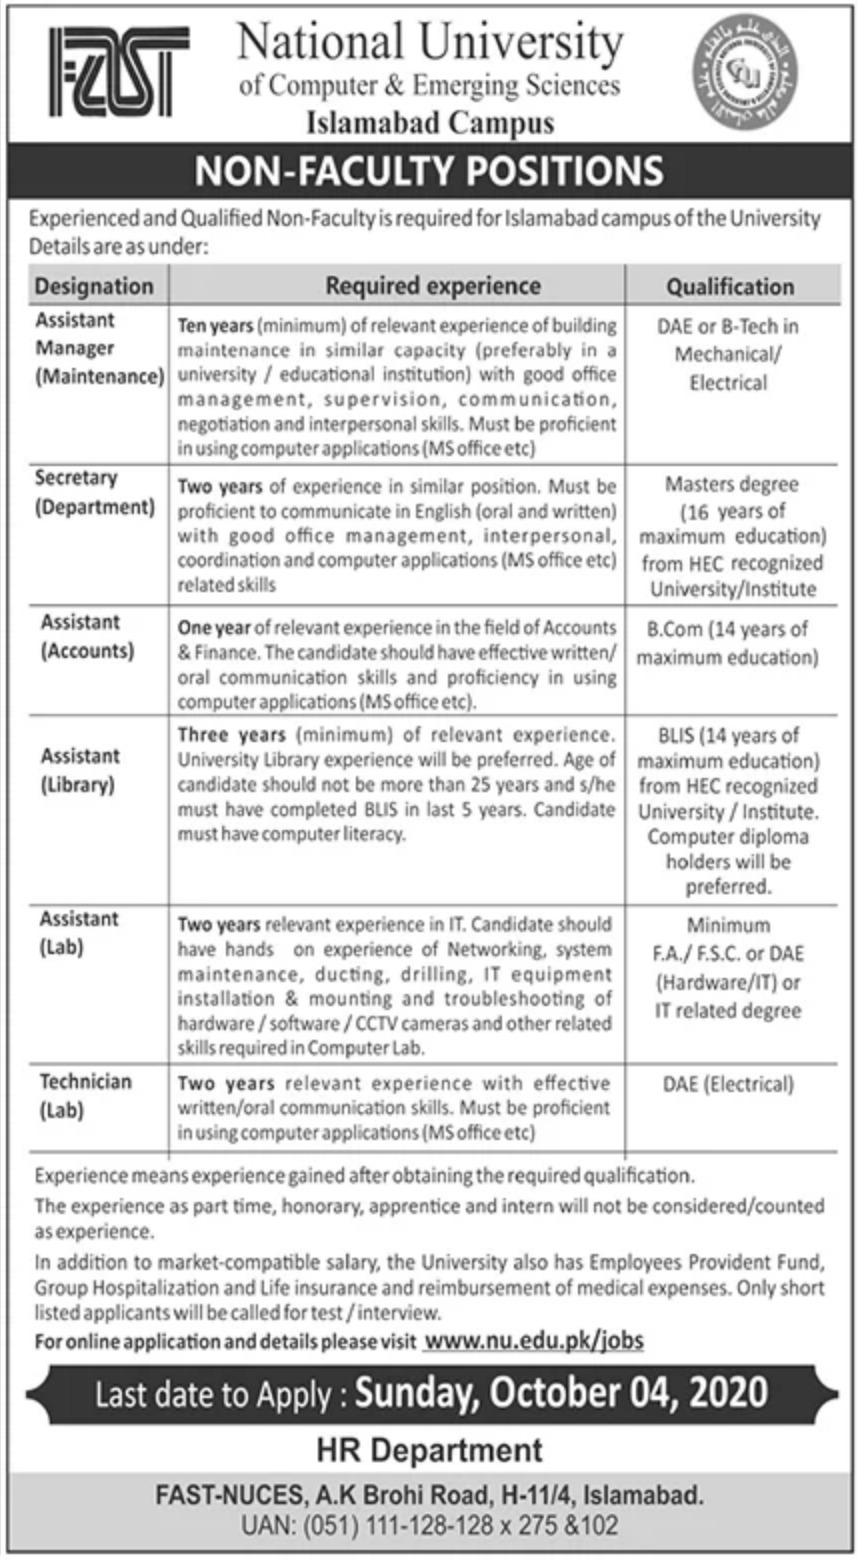 National University of Computer & Emerging Sciences Islamabad Jobs September 2020